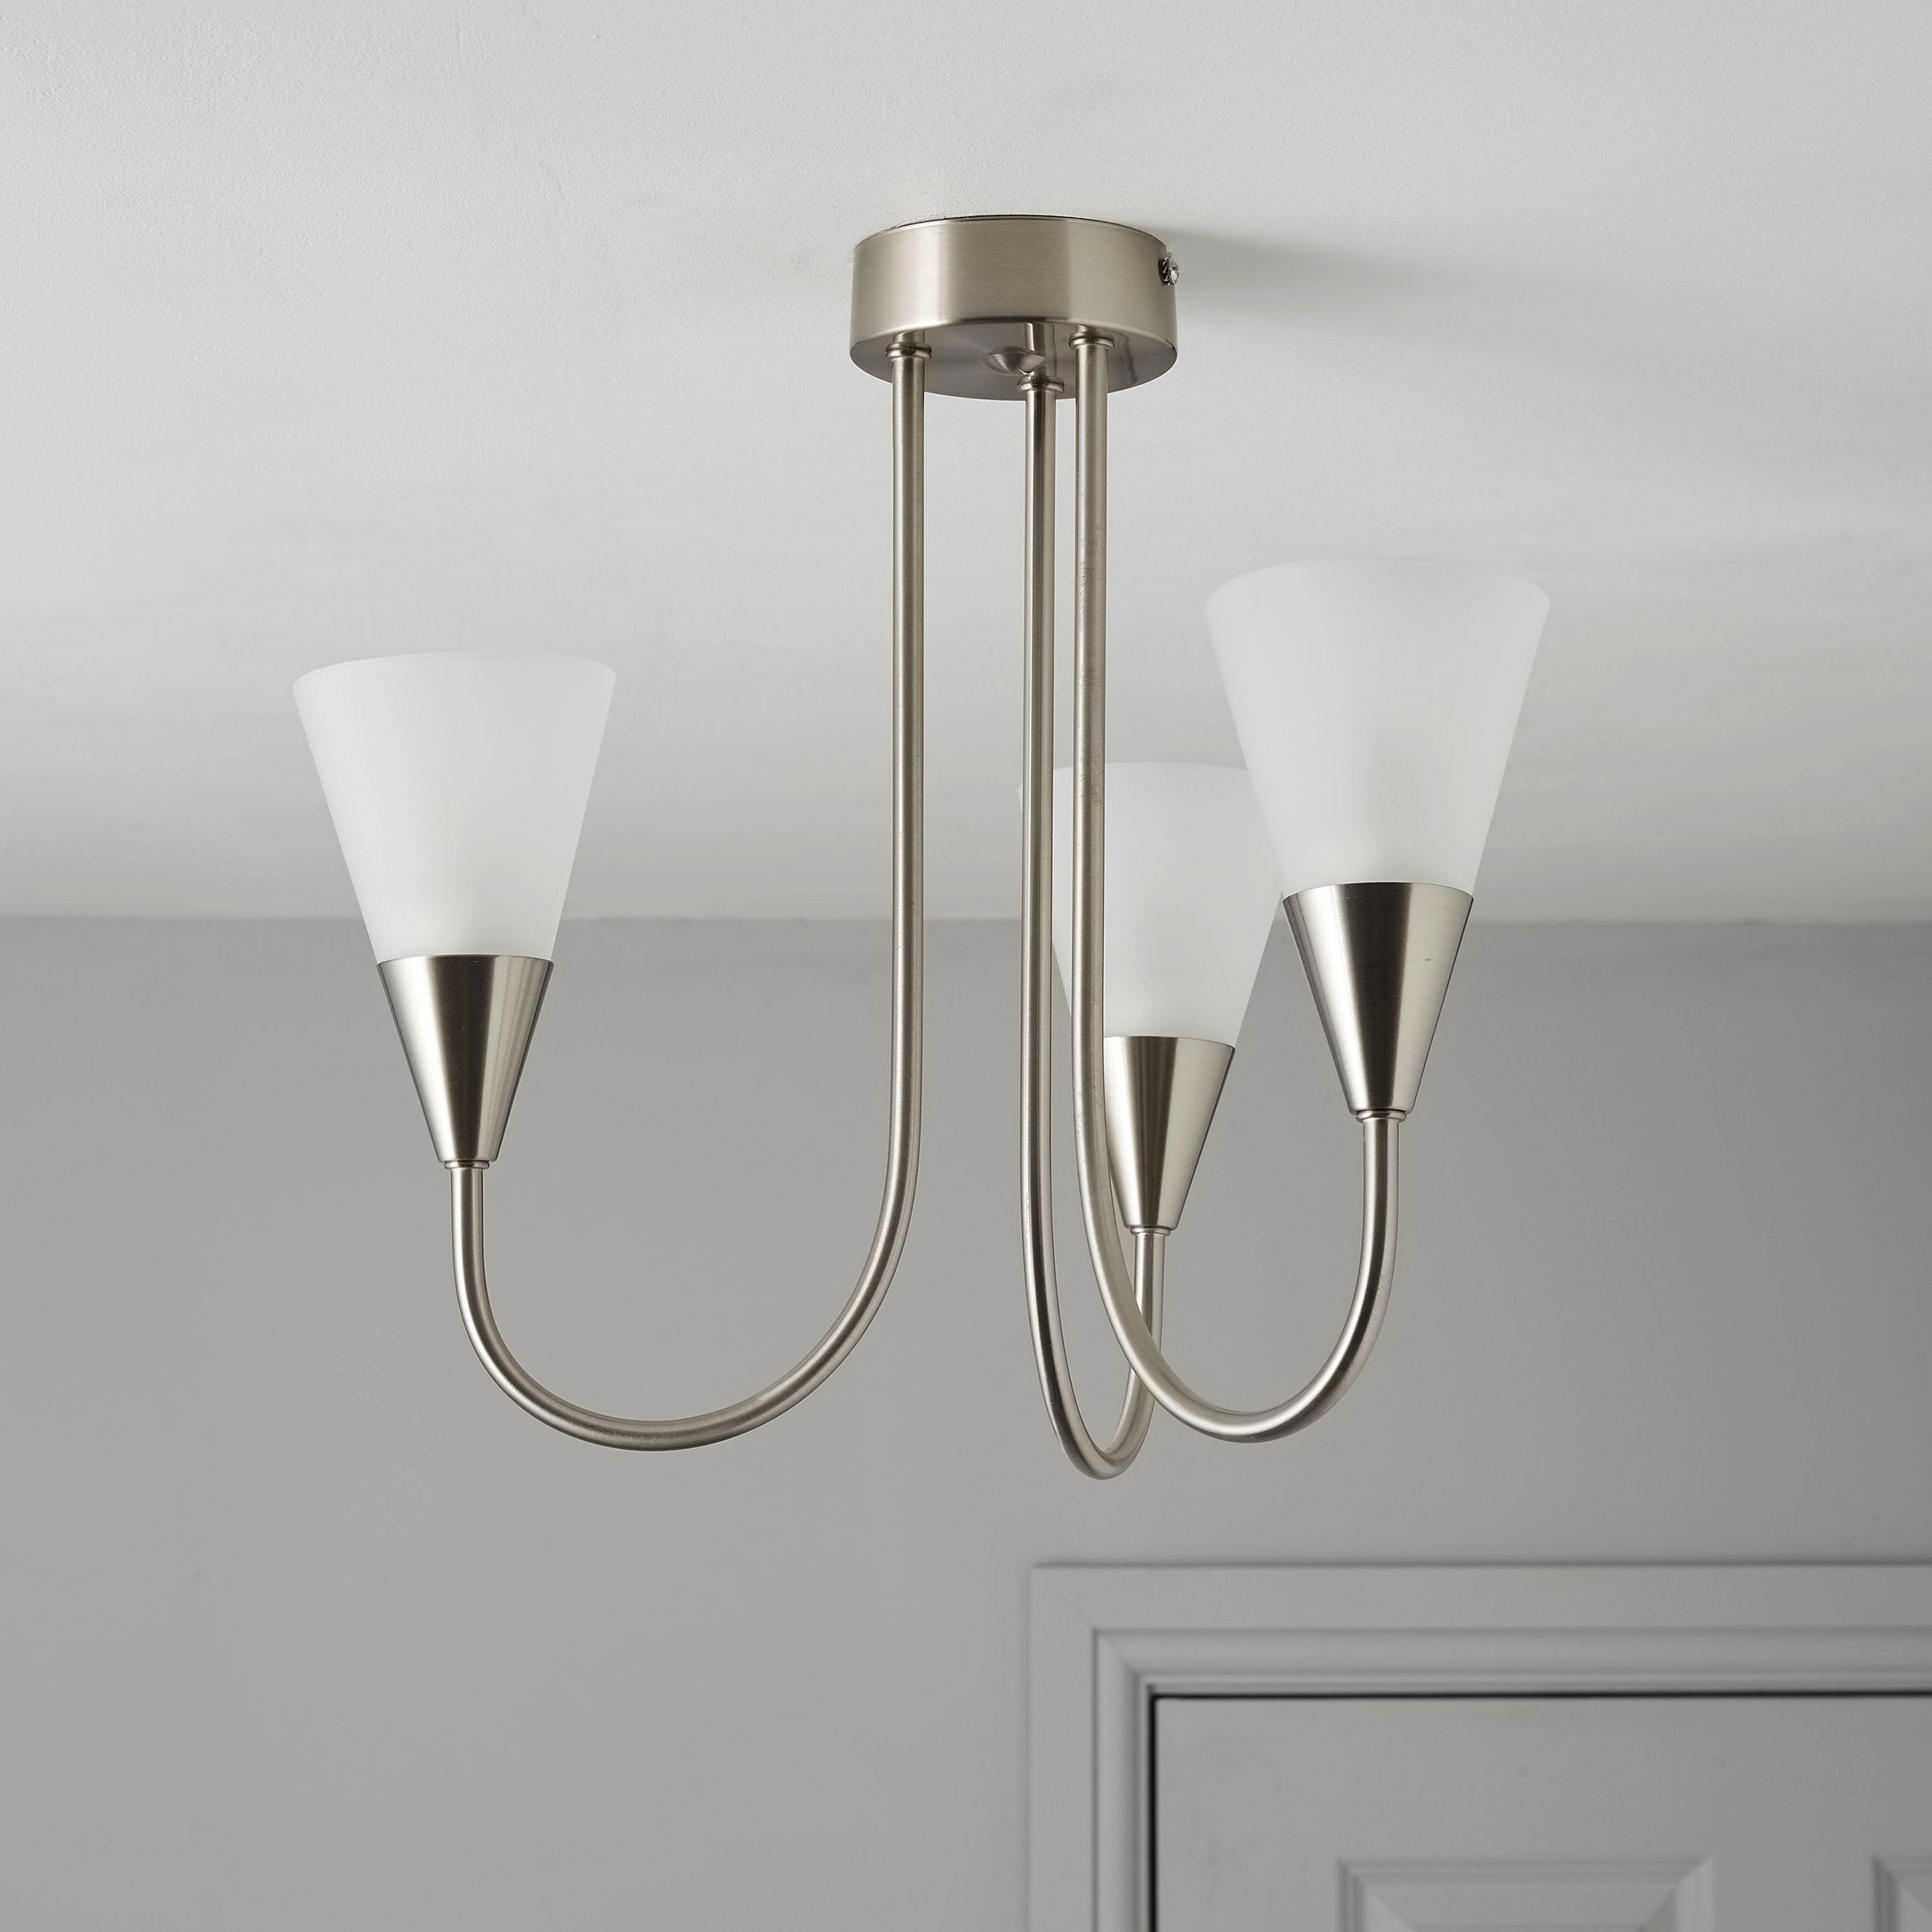 2019 Ceiling Light Fittings B&q #2 Reya Nickel Effect 3 Lamp Pendant Regarding Outdoor Ceiling Lights At B&q (View 18 of 20)